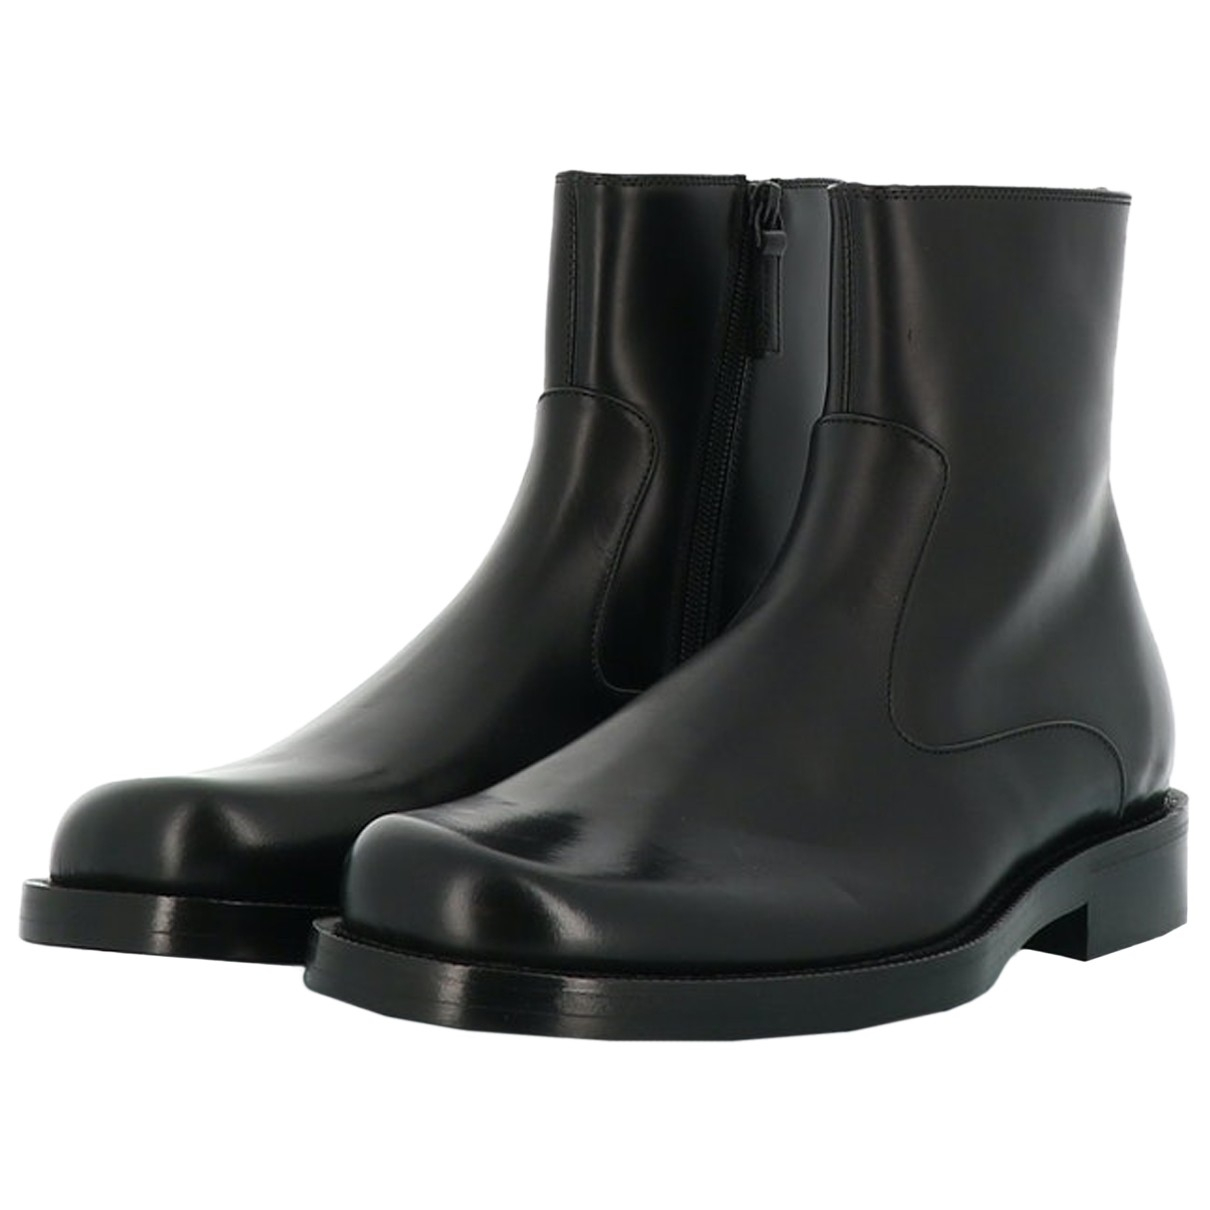 Balenciaga N Black Leather Boots for Women 39 EU